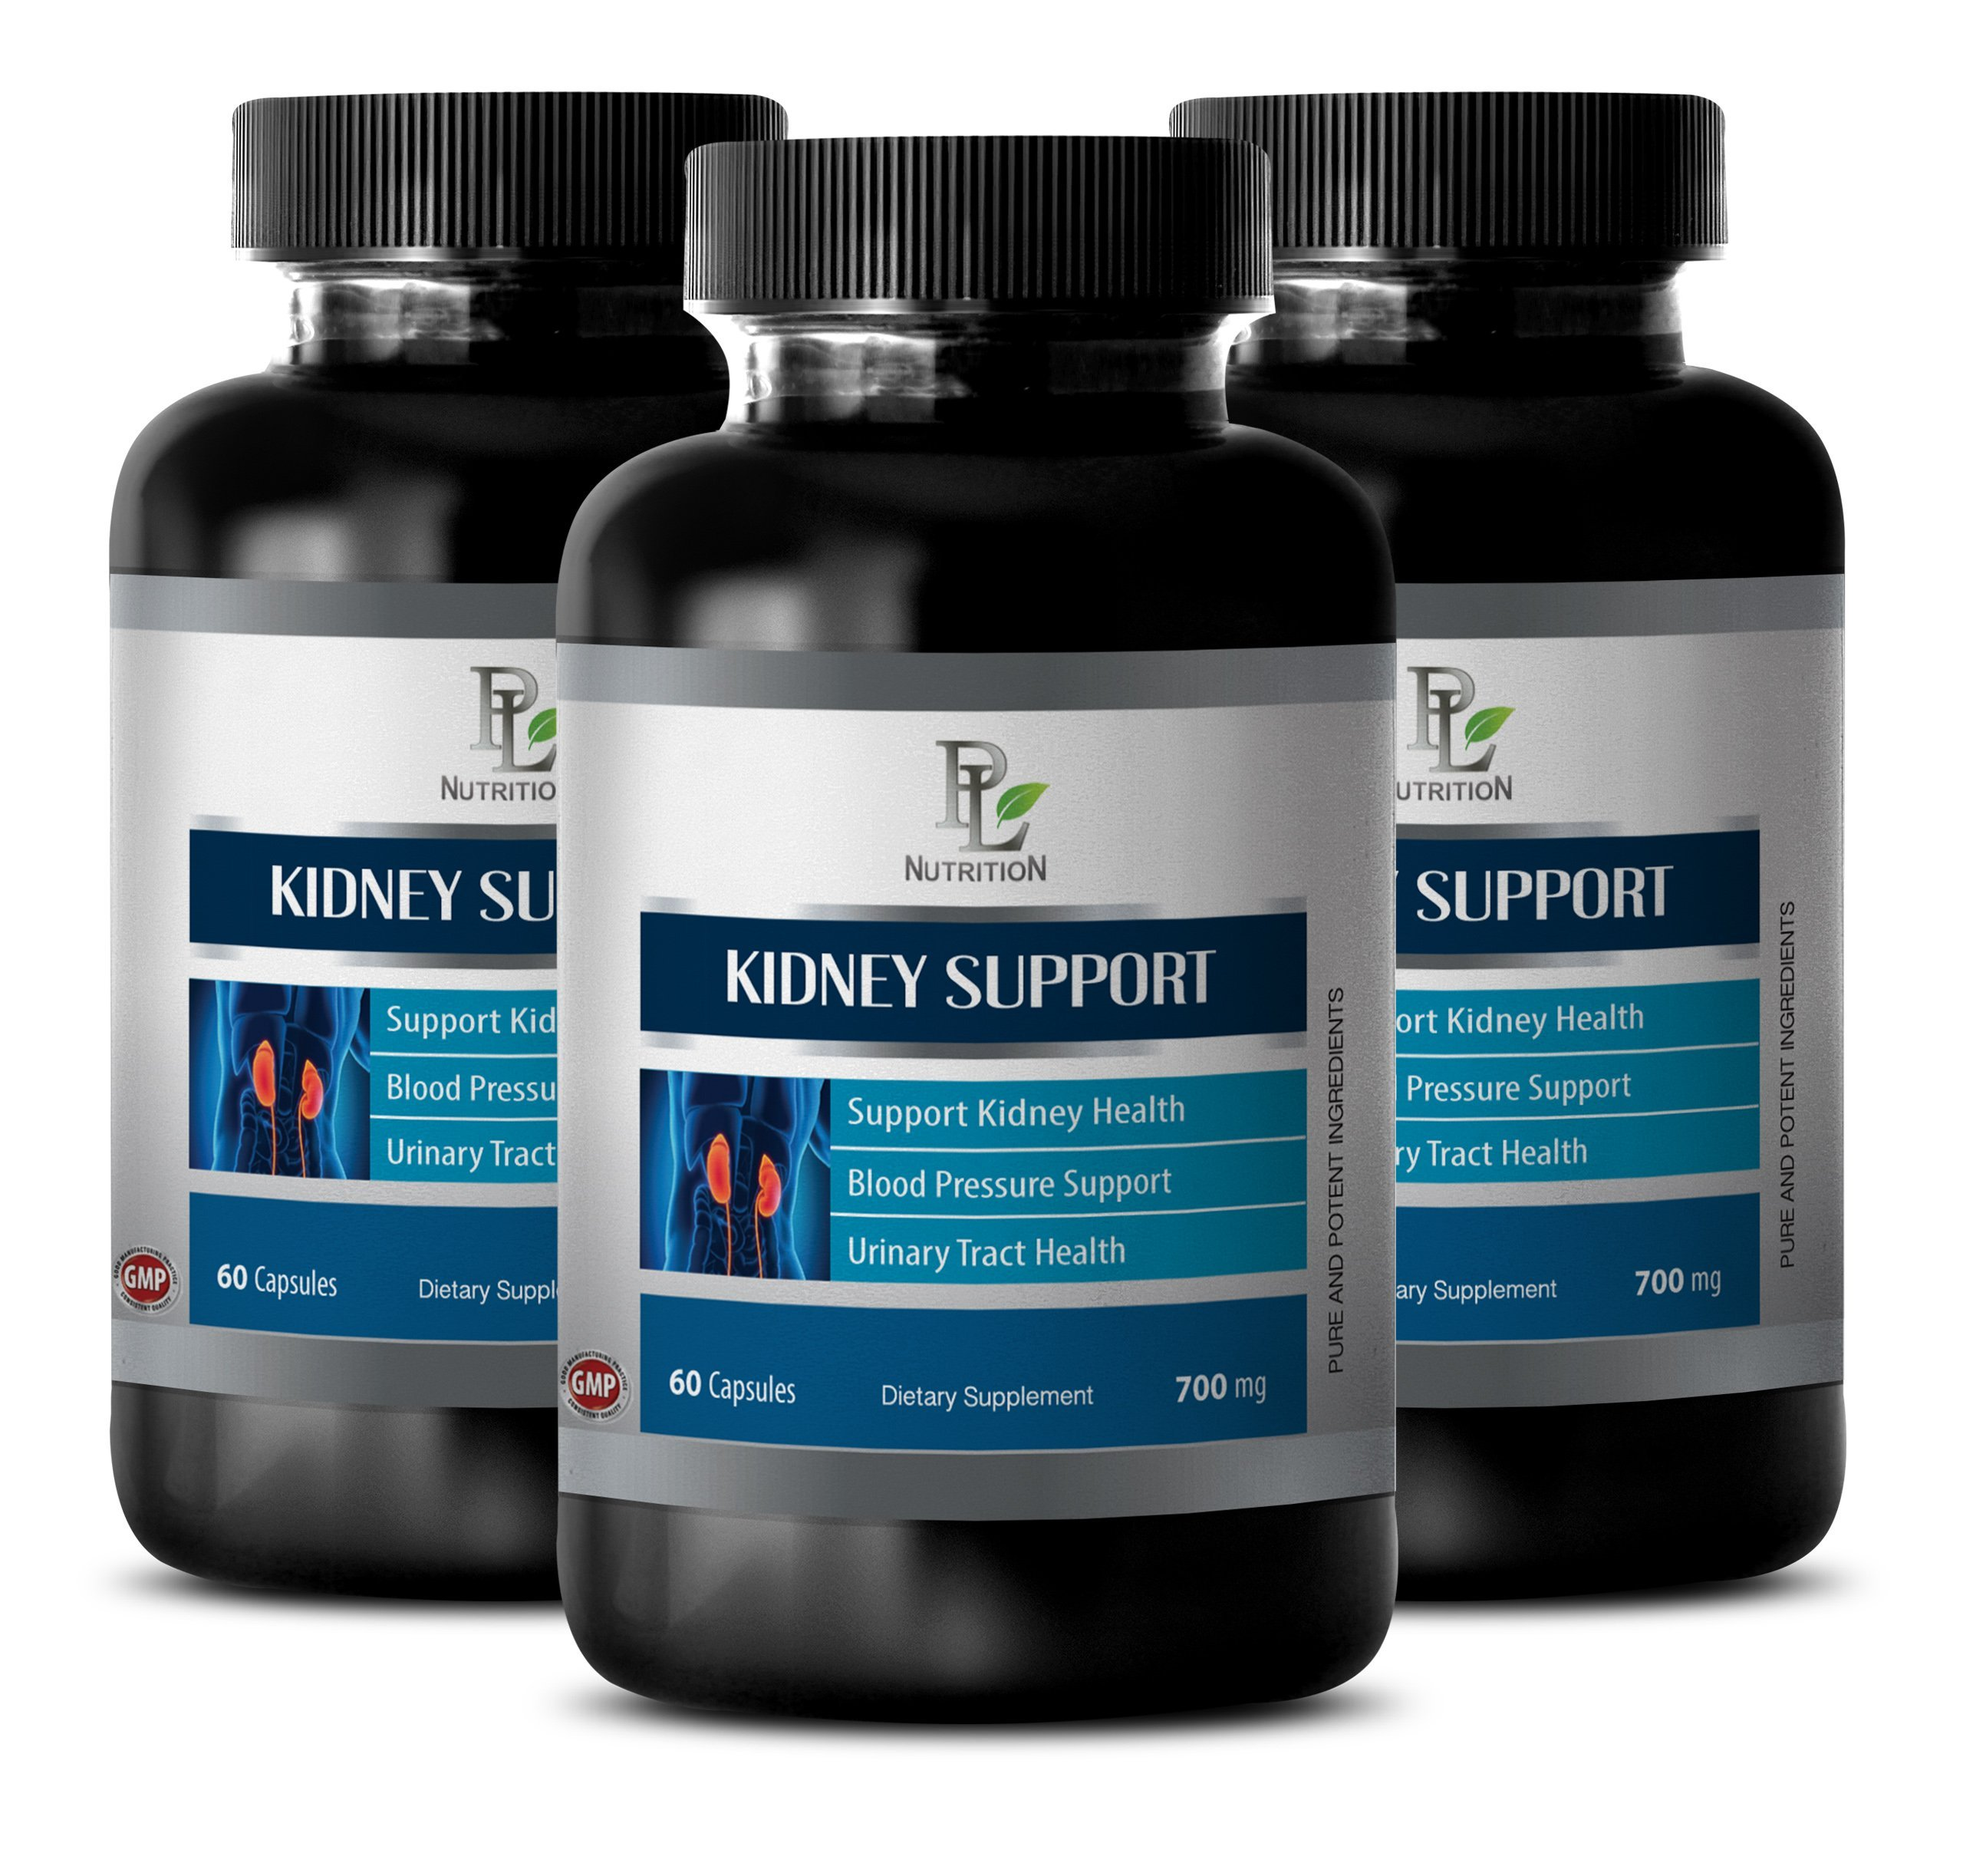 Healthy Urinary Tract Pure Formula - Kidney Support Complex - Female Urination - 3 Bottles 180 Capsules by PL NUTRITION